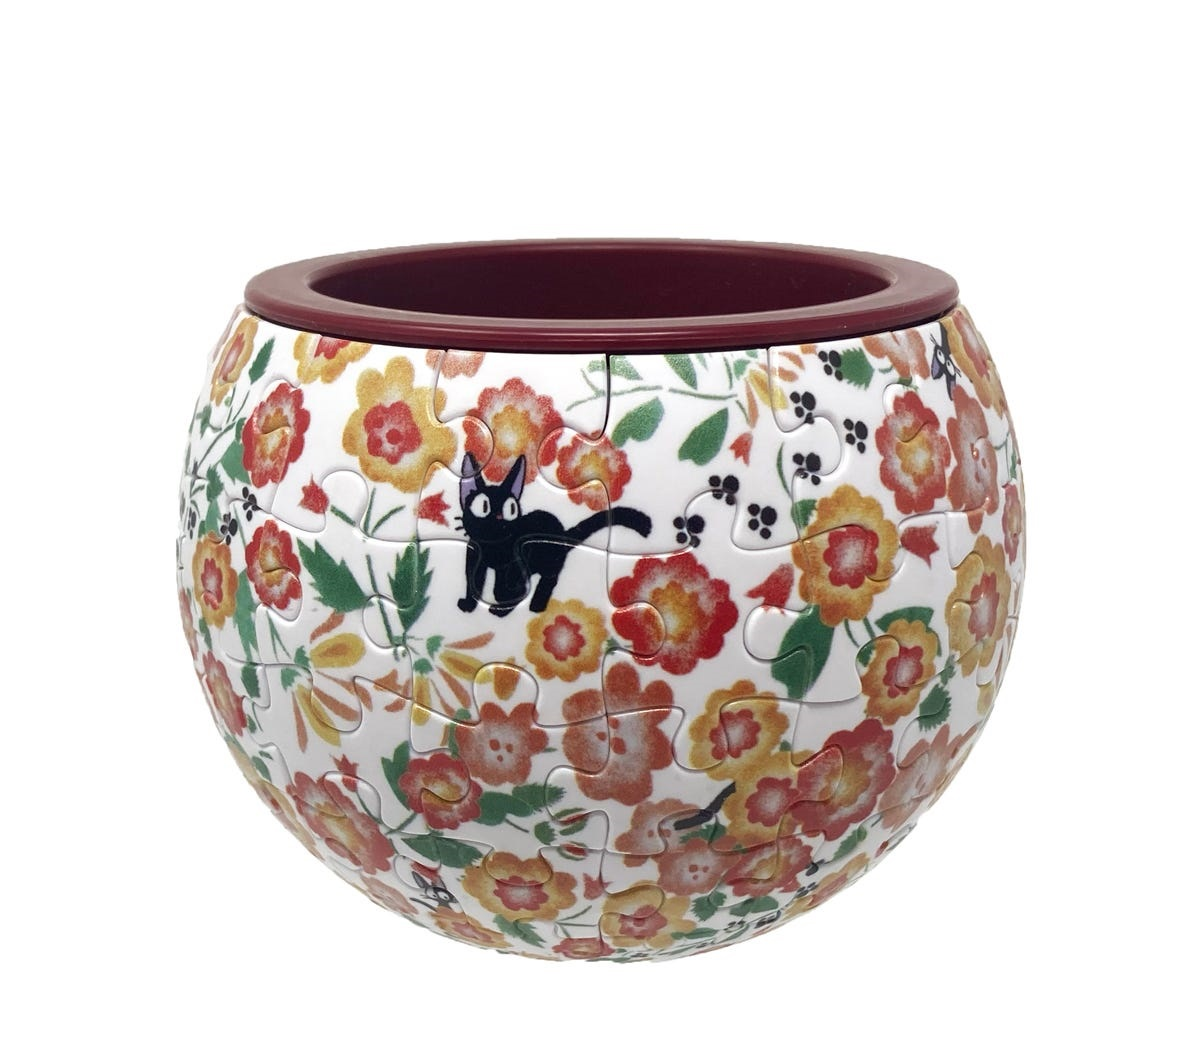 Kikis Delivery Service: Jiji Flower Garden Puzzle Bowl